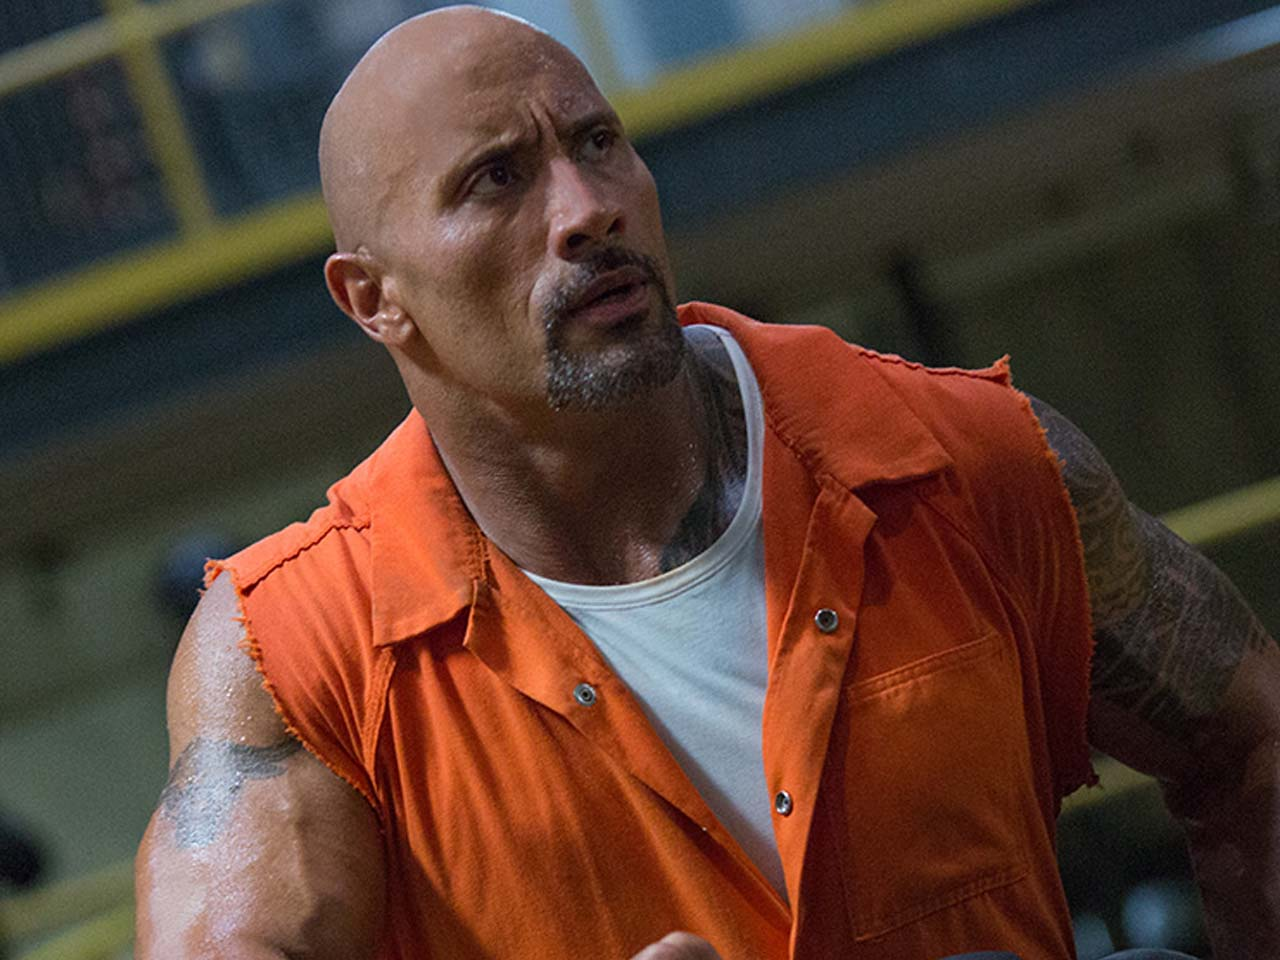 Dwayne Johnson stars as Luke Hobbs in 'The Fate of the Furious'